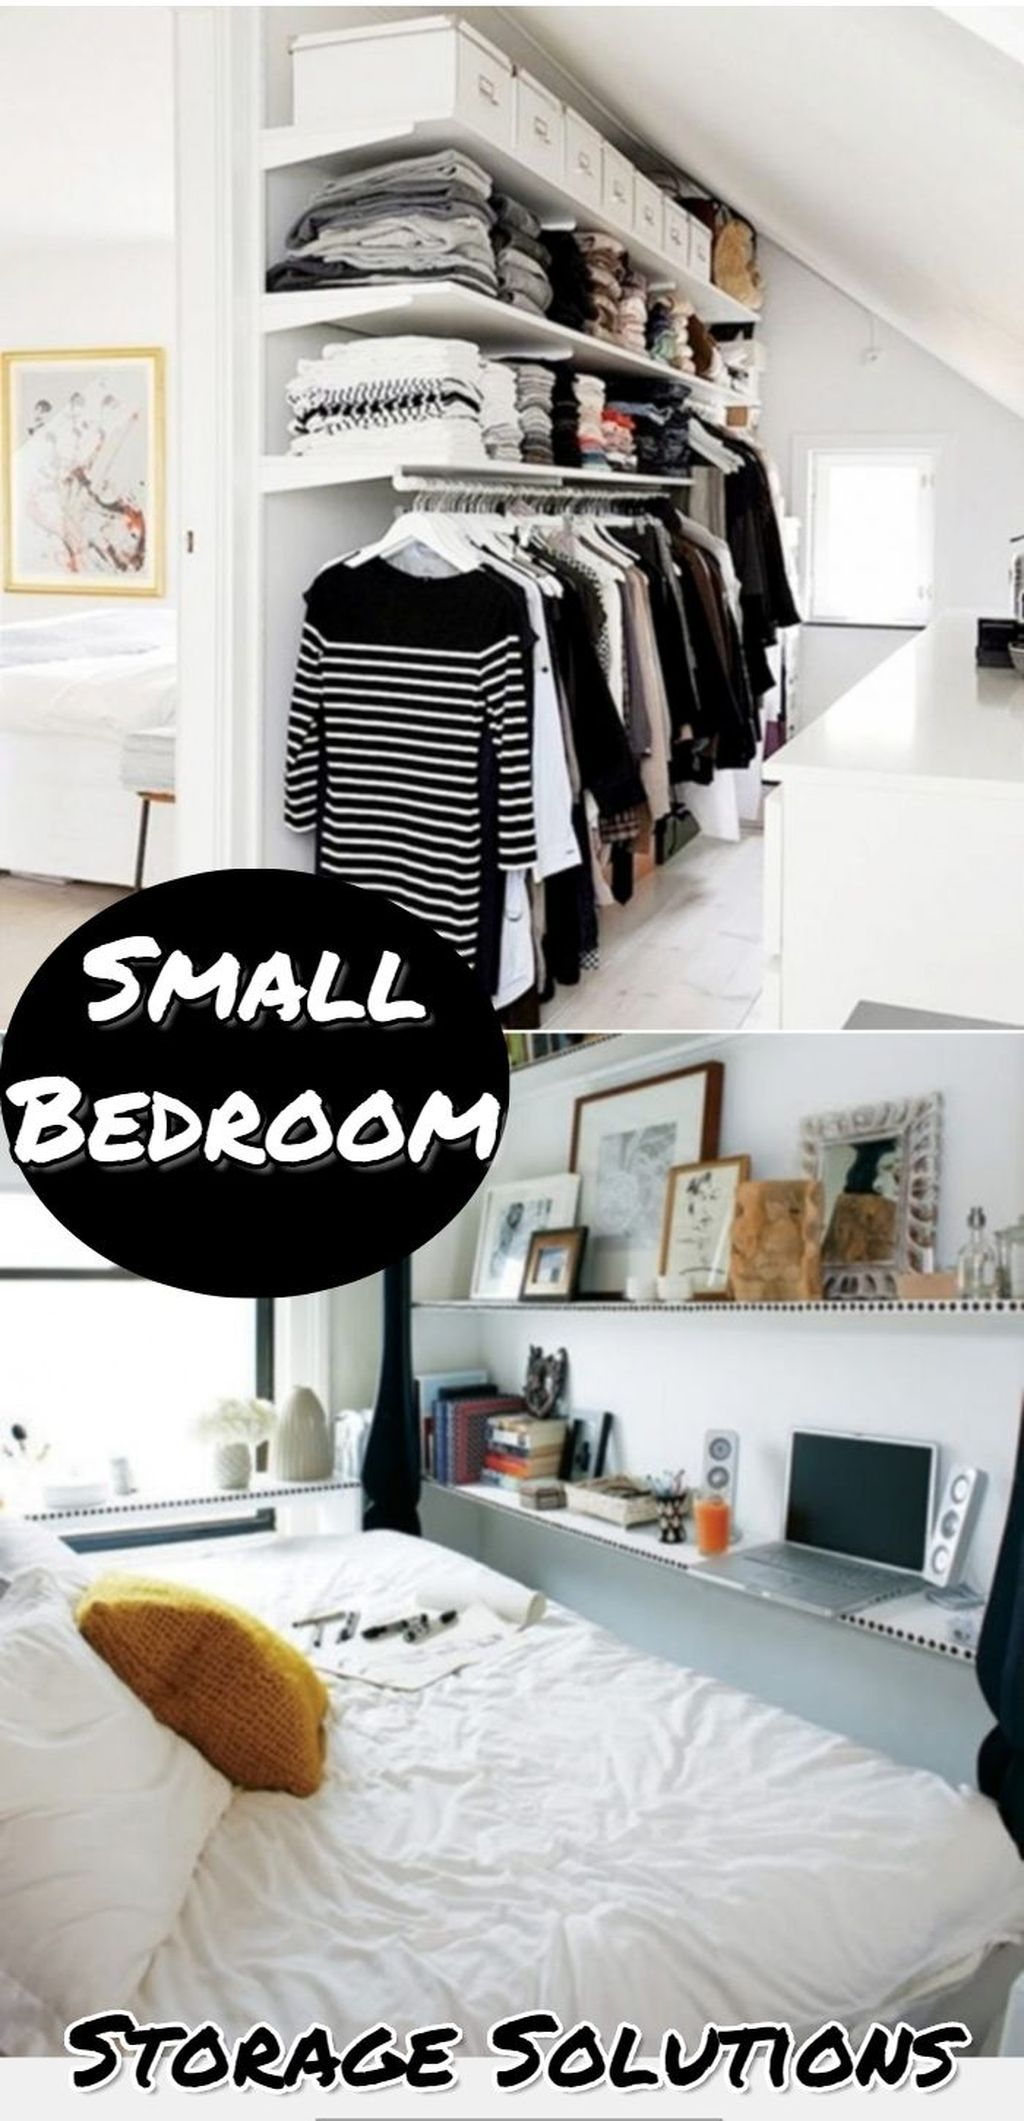 30+ Storage Solutions For Small Spaces DIY Small bedroom